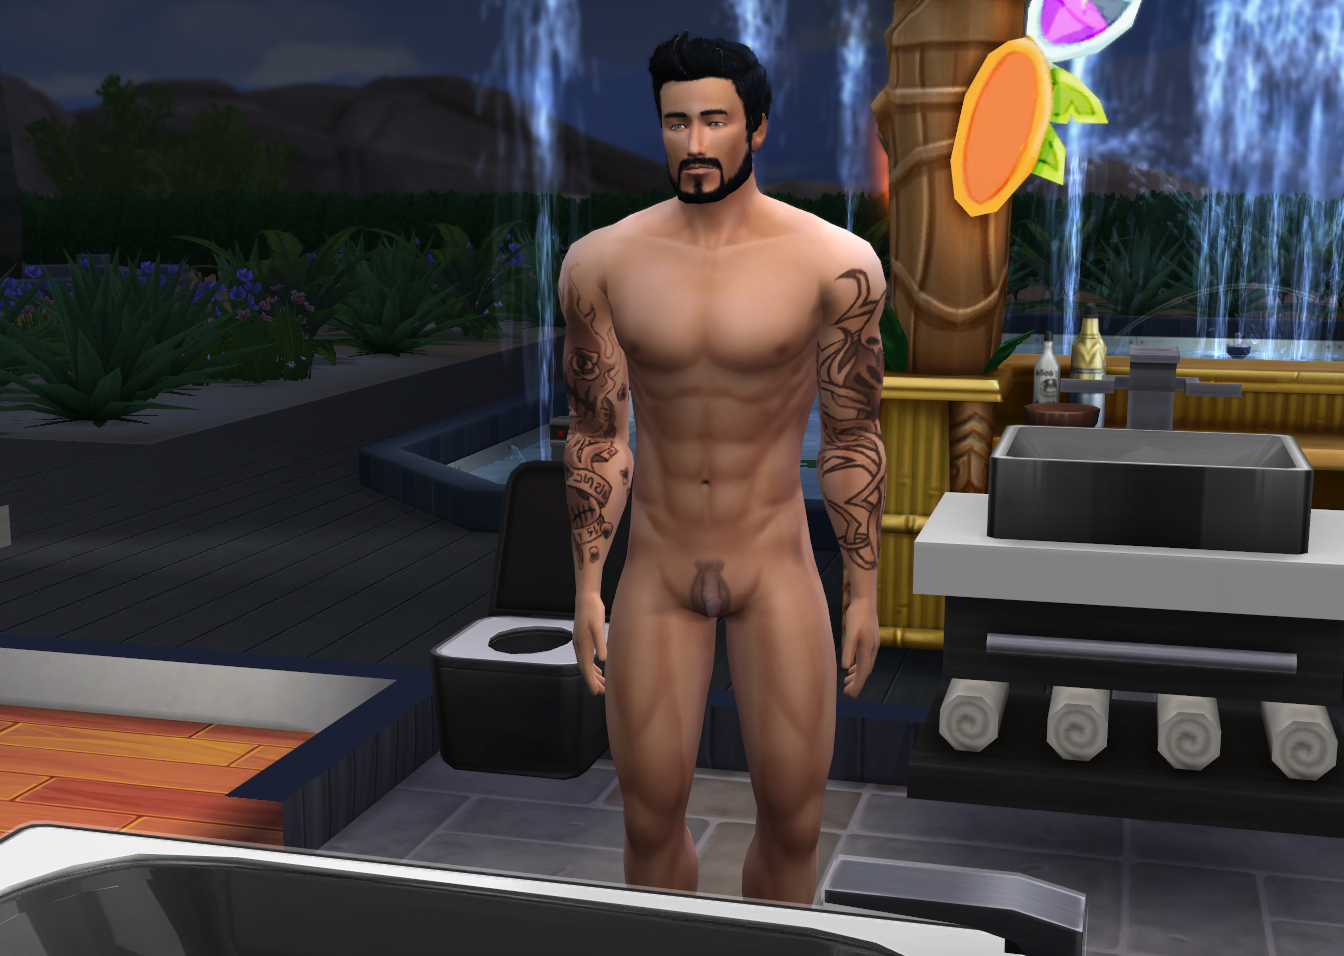 Sims 2 nude patches and cheats naked pic